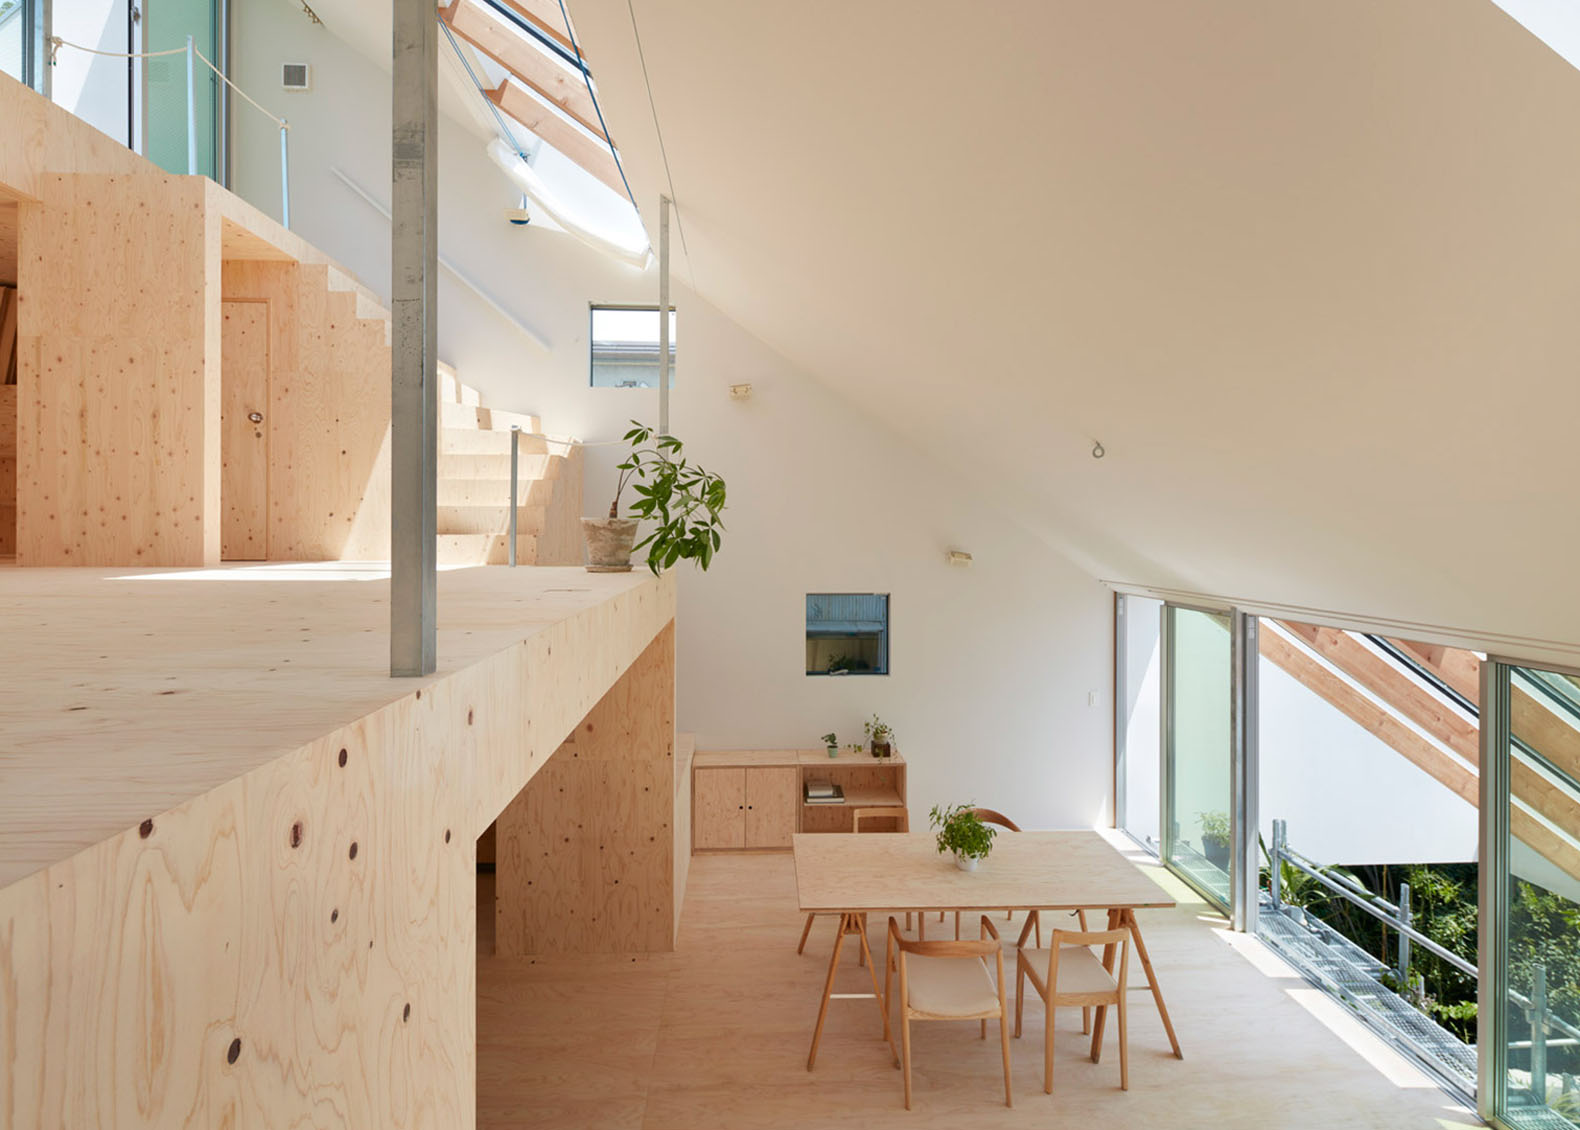 Skylights and clerestory windows bathe the japanese re slope house in natural light inhabitat - Skylight house plans natural light ...